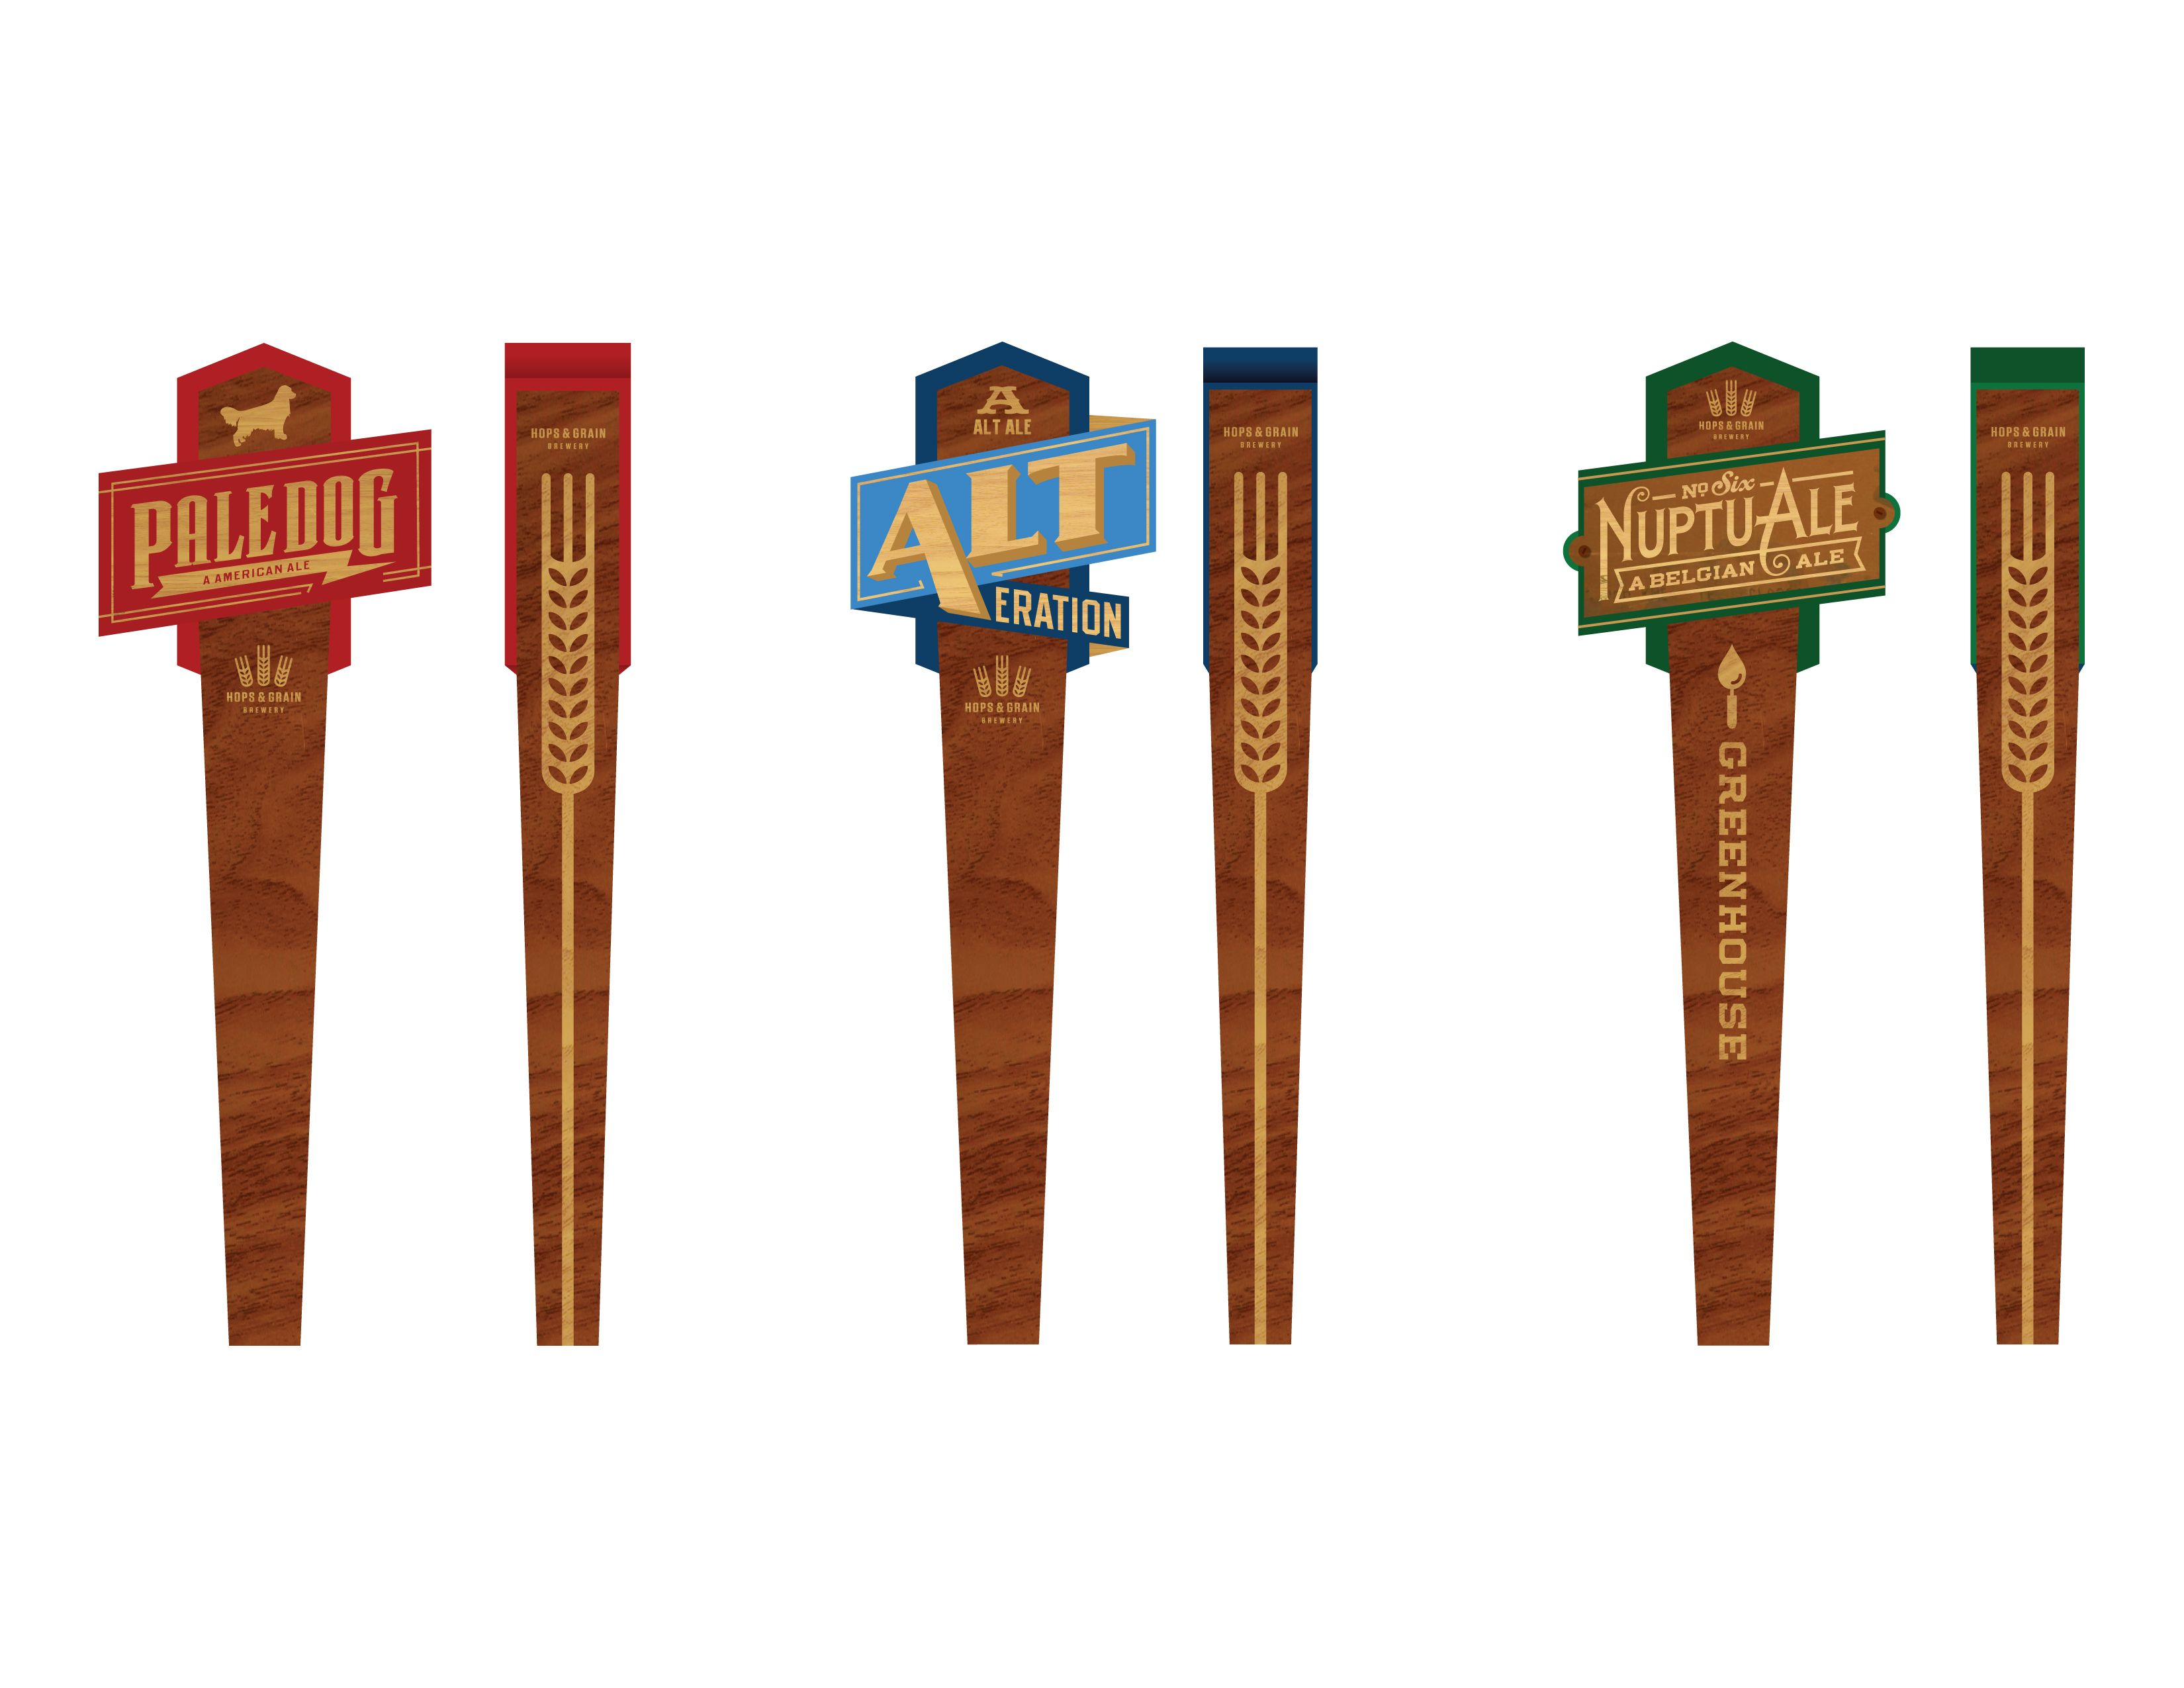 Hops grain tap handles taps great example of one tap handle working for multiple brews heres a sneak peak at sciox Gallery